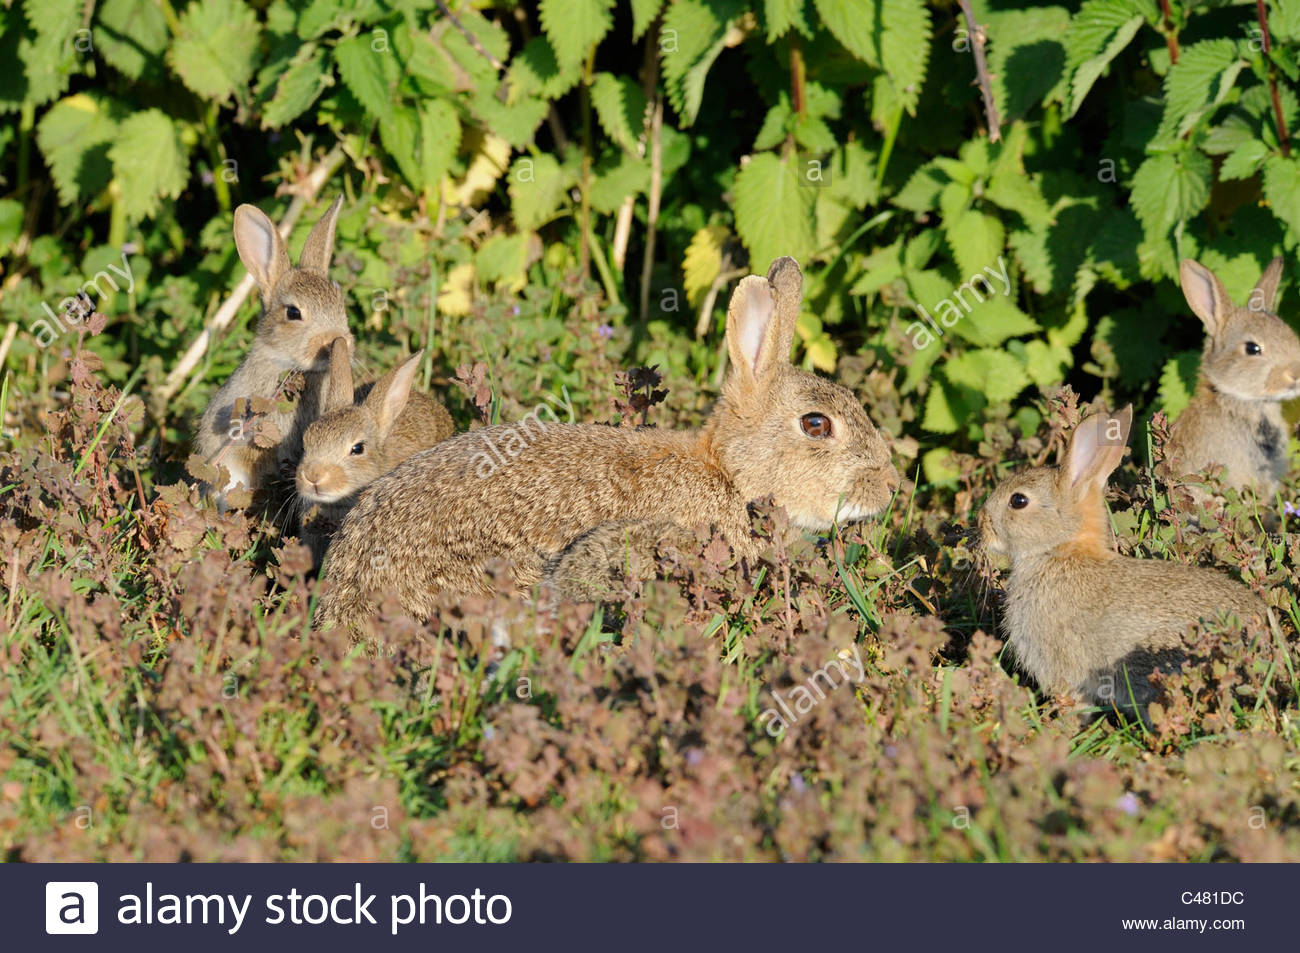 European Rabbits, oryctolagus cunniculus adult female with young outside warren, Norfolk, England May - Stock Image